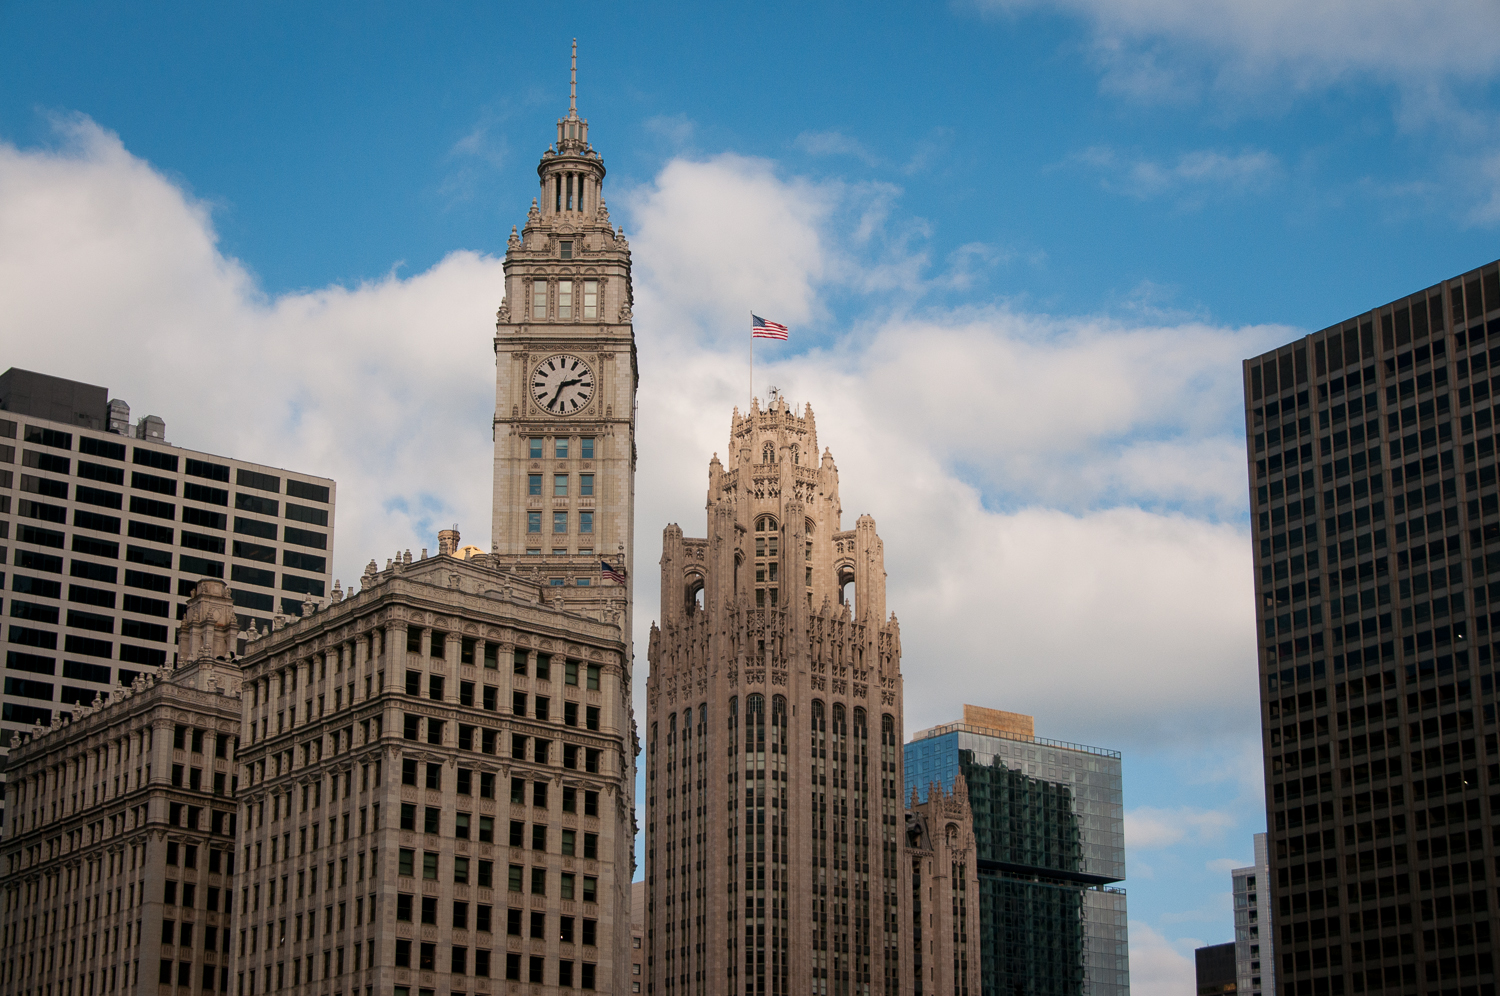 Wrigley Building and Tribune Tower